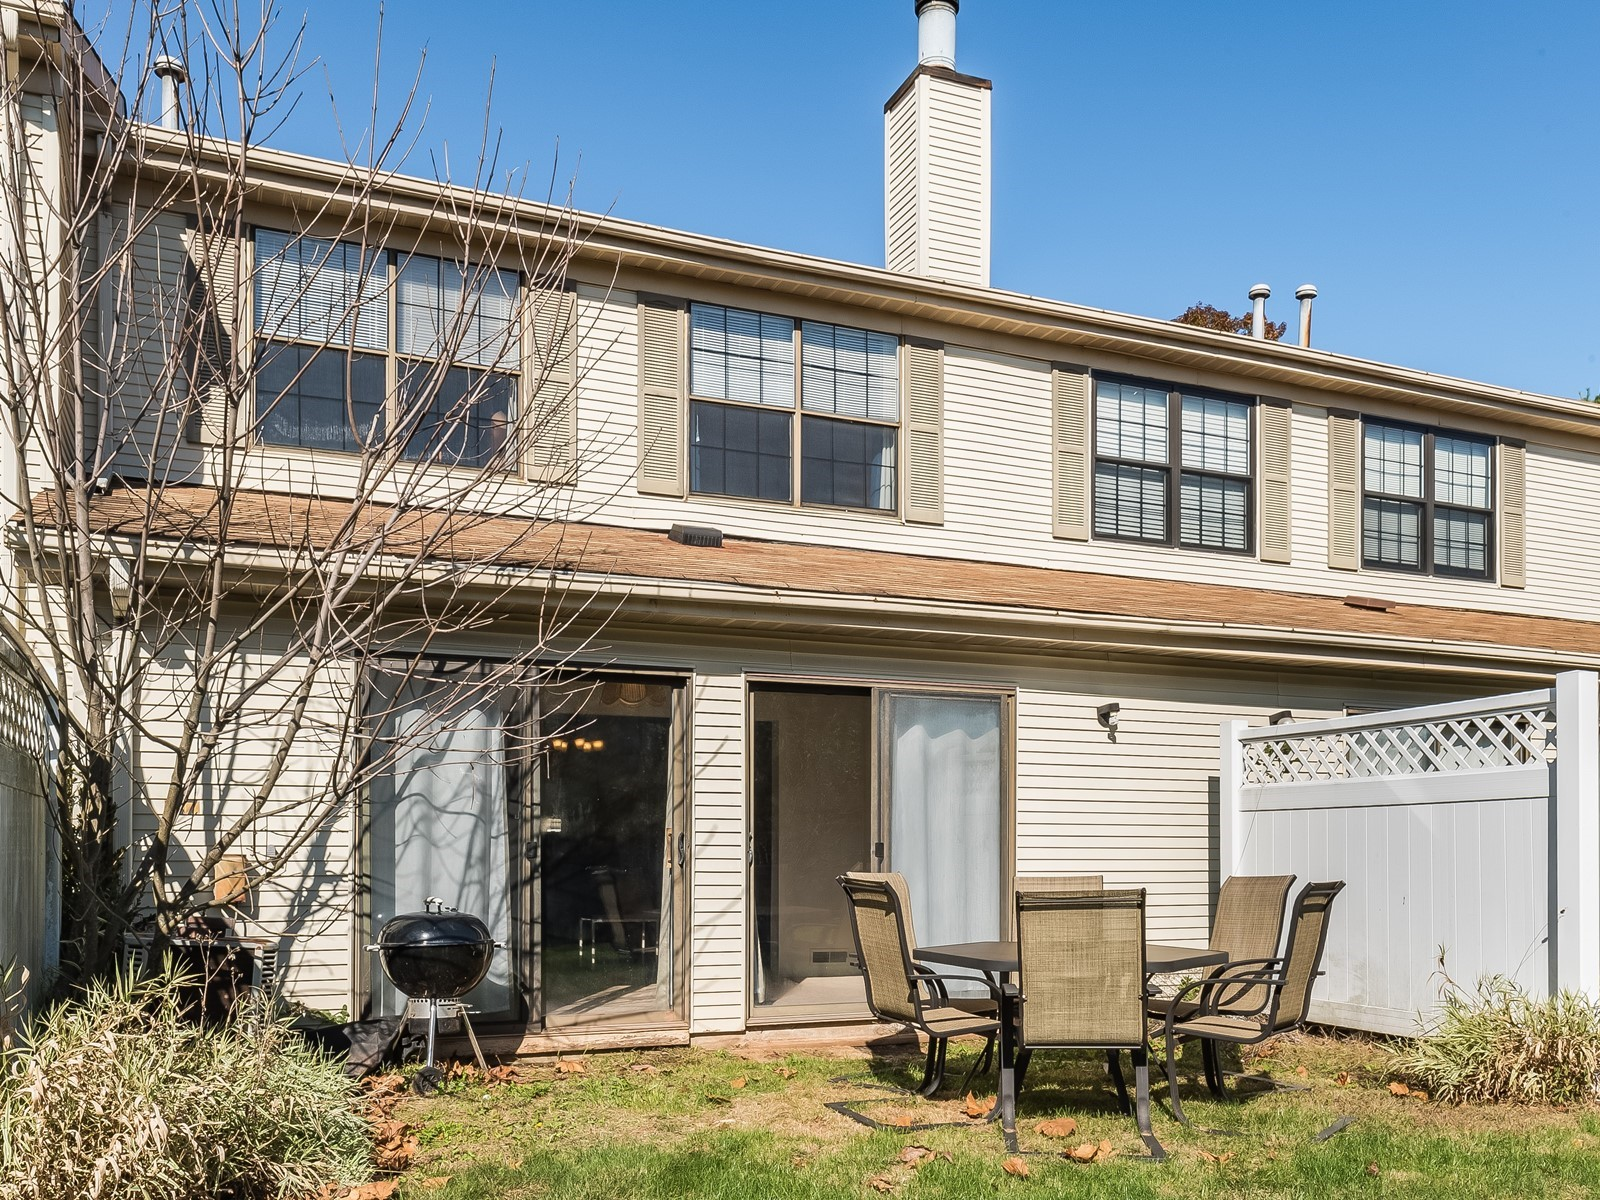 Piscataway 147 Furnished housing backyard with sliding glass door to outdoor seating area and grill